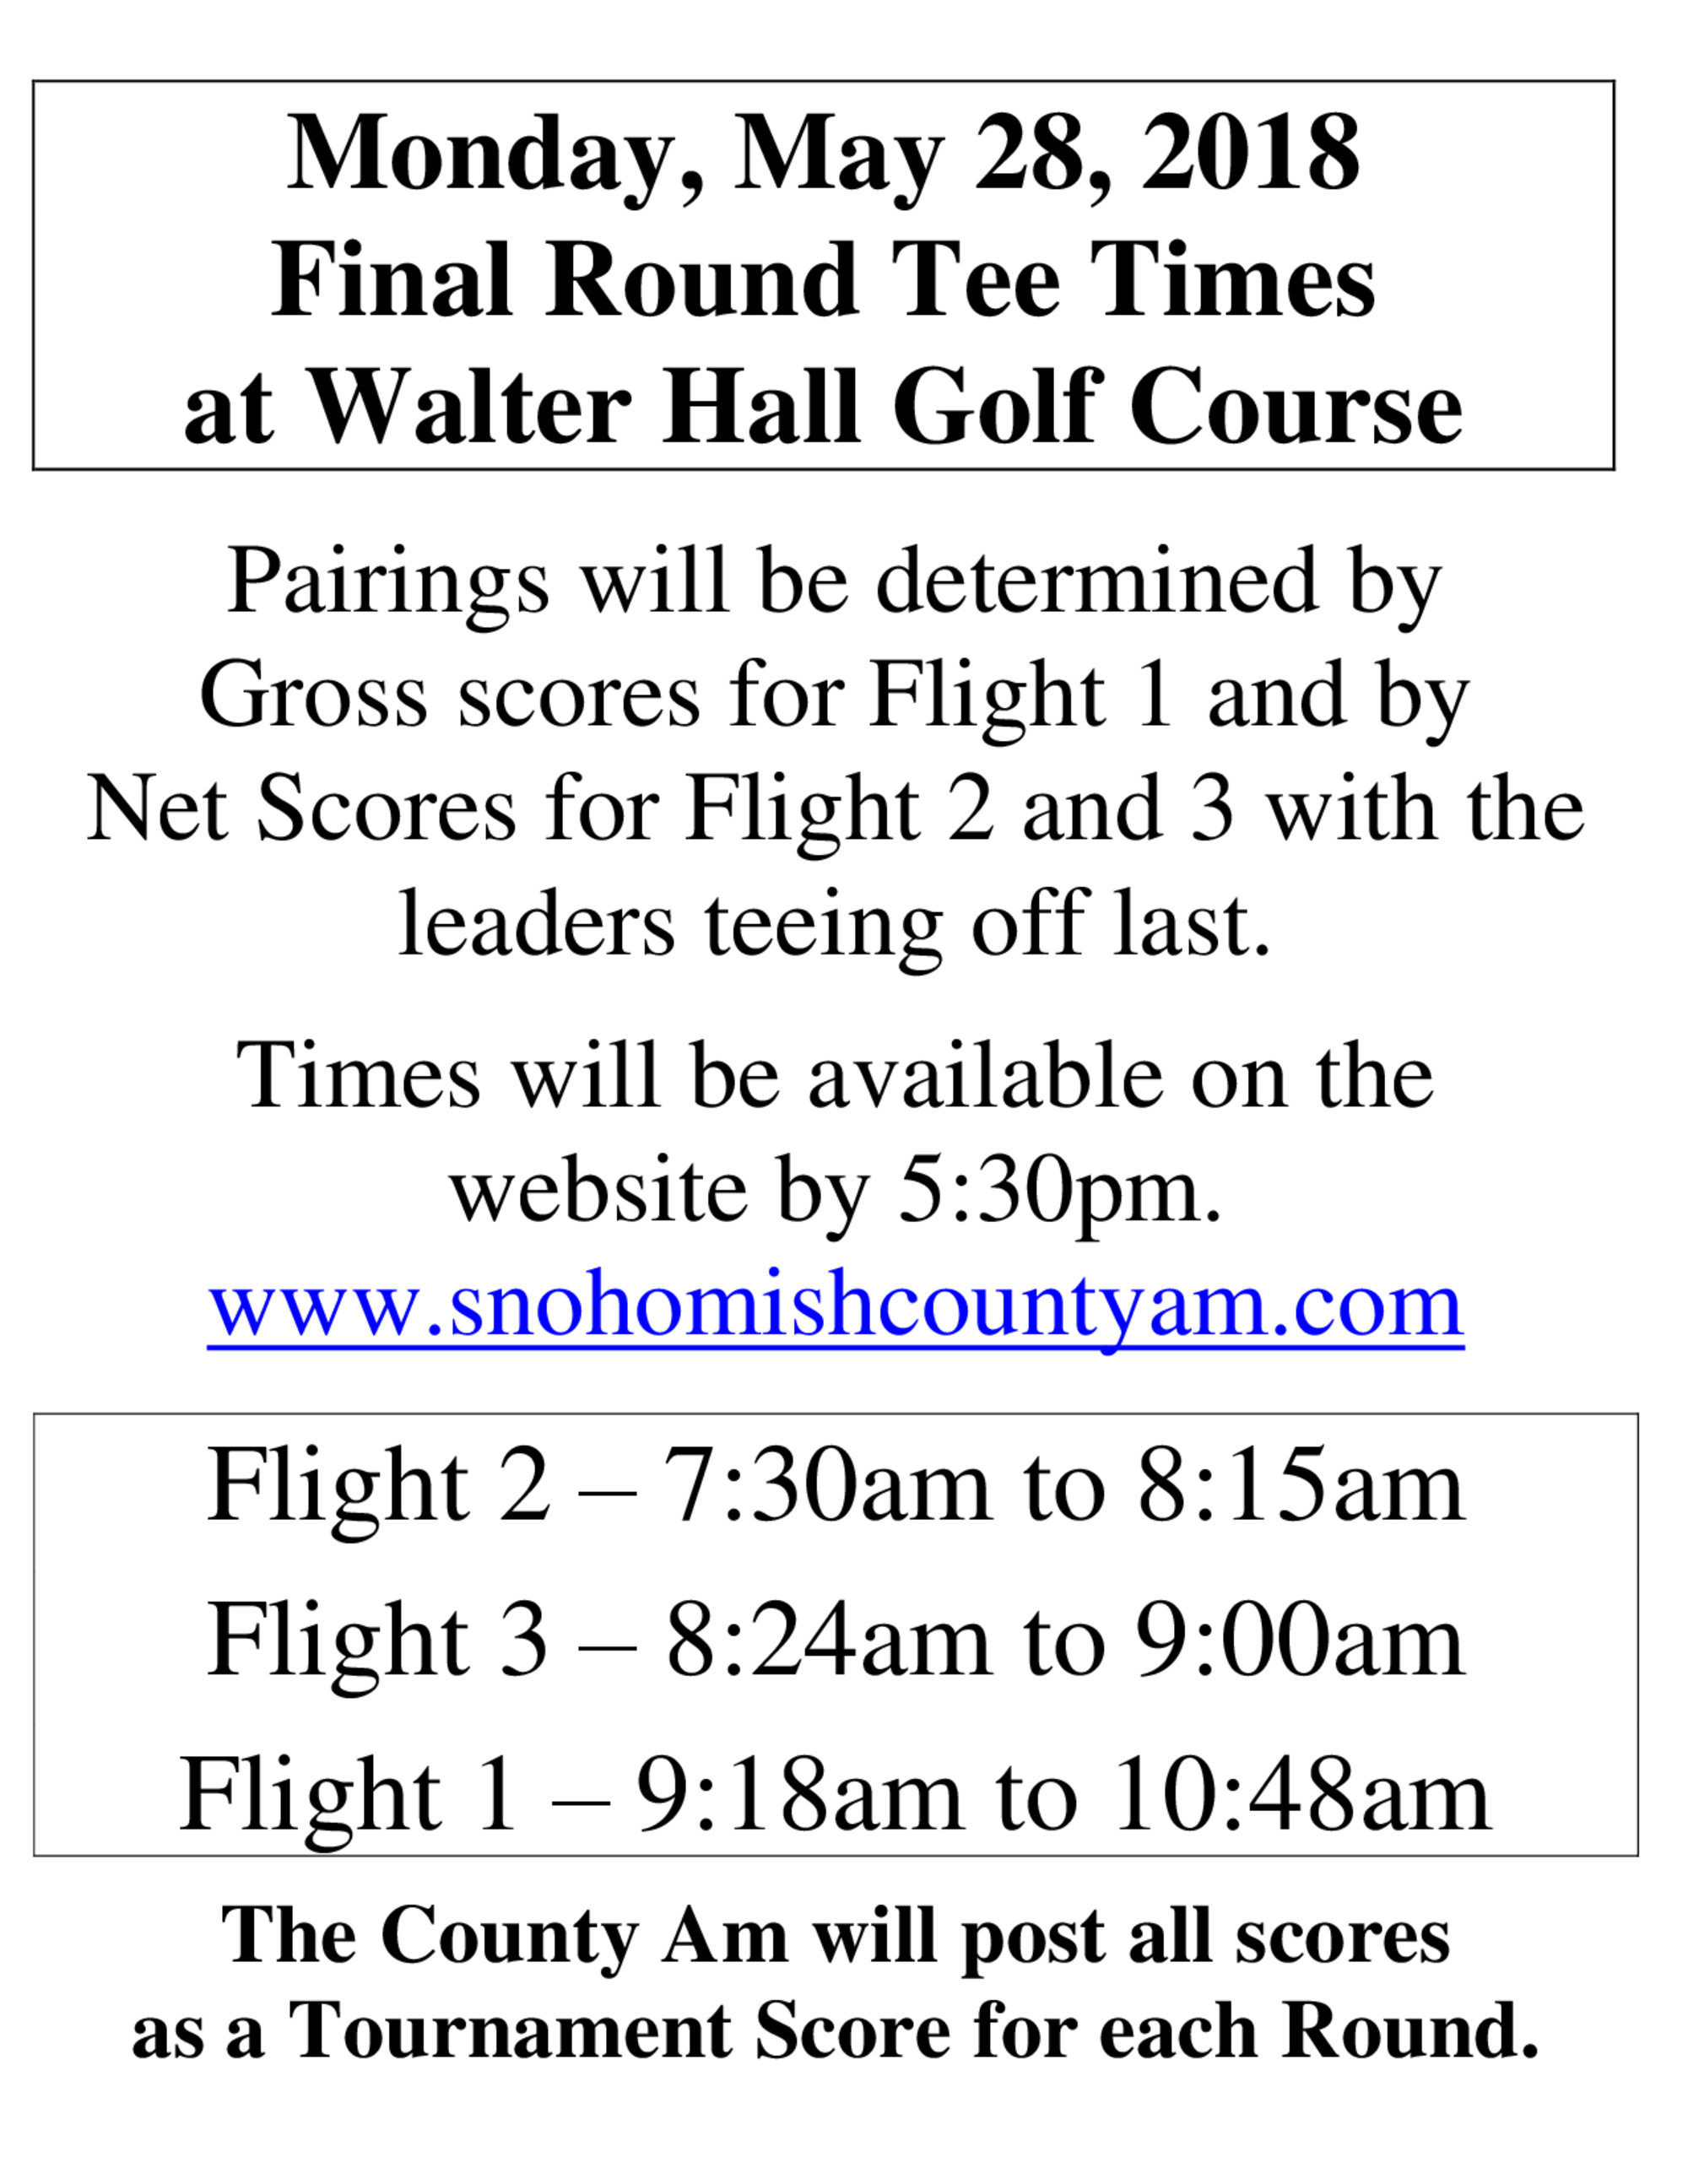 2018 sca round 3 tee time information 1